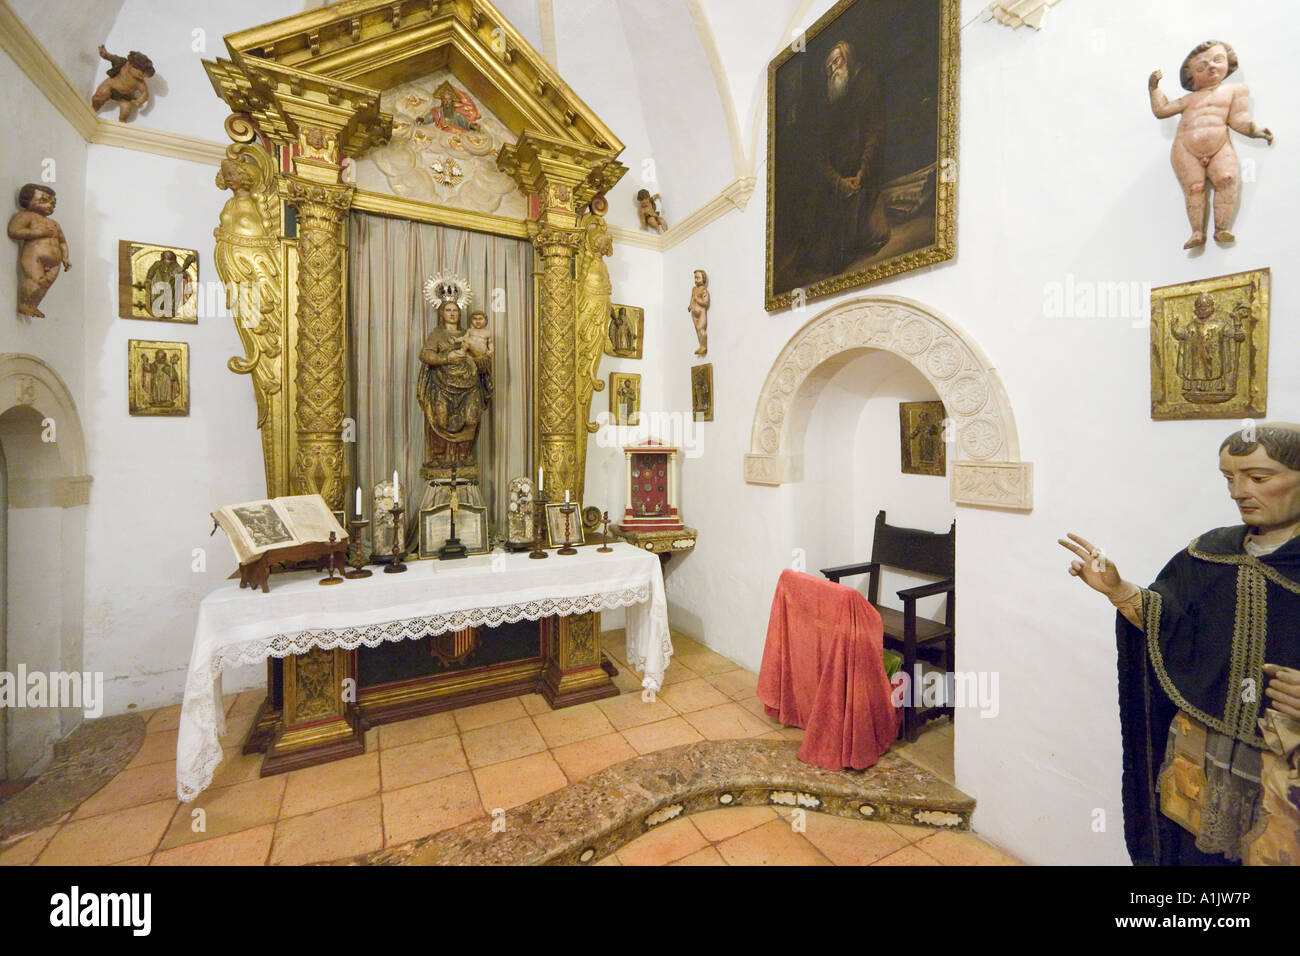 Interior of  the Real Cartuja (Royal Carthusian Monastery), Valldemossa, West Coast, Mallorca, Balearic Islands, - Stock Image